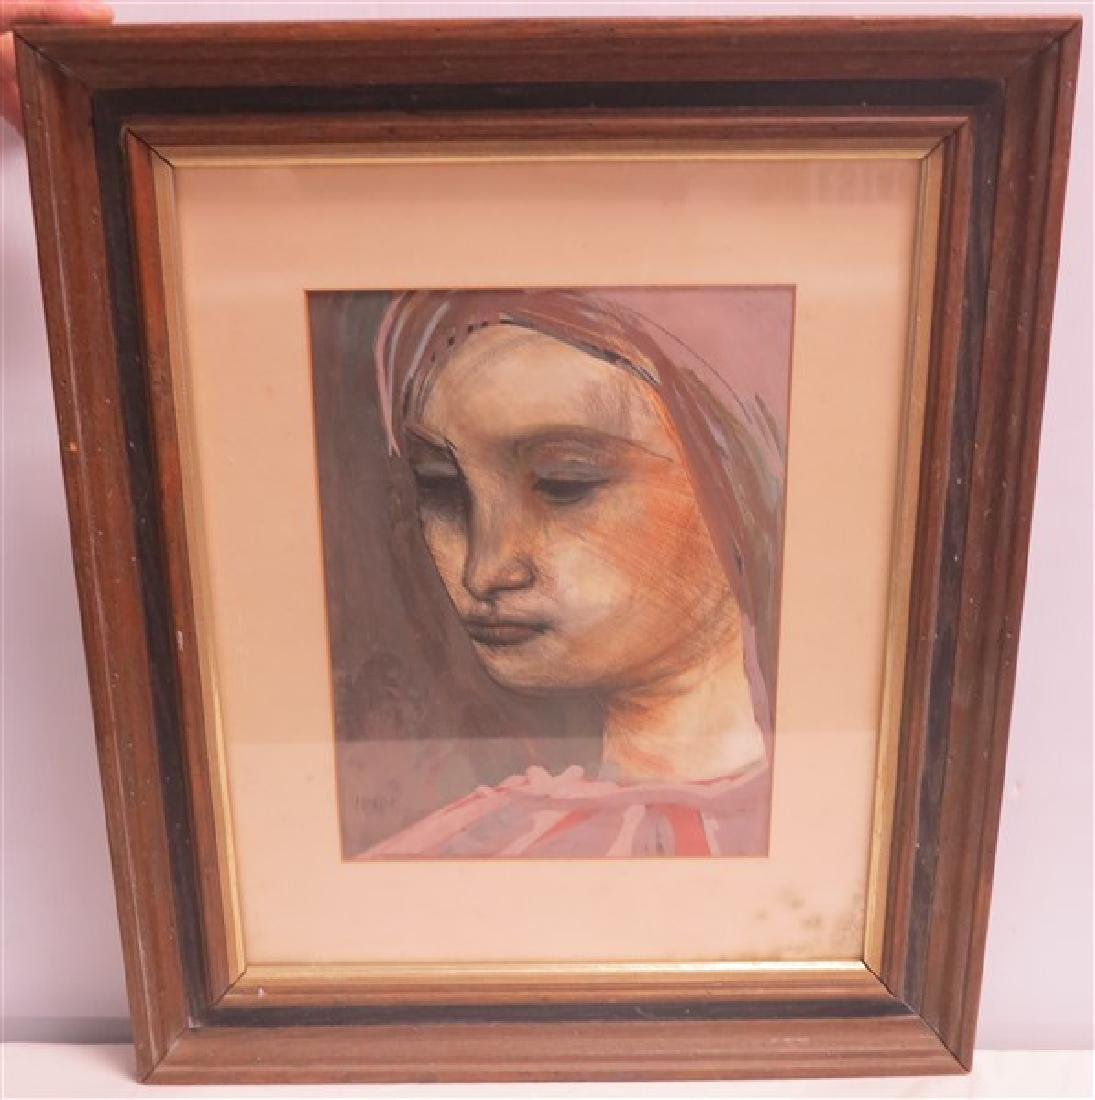 Framed and Signed Watercolor Portrait